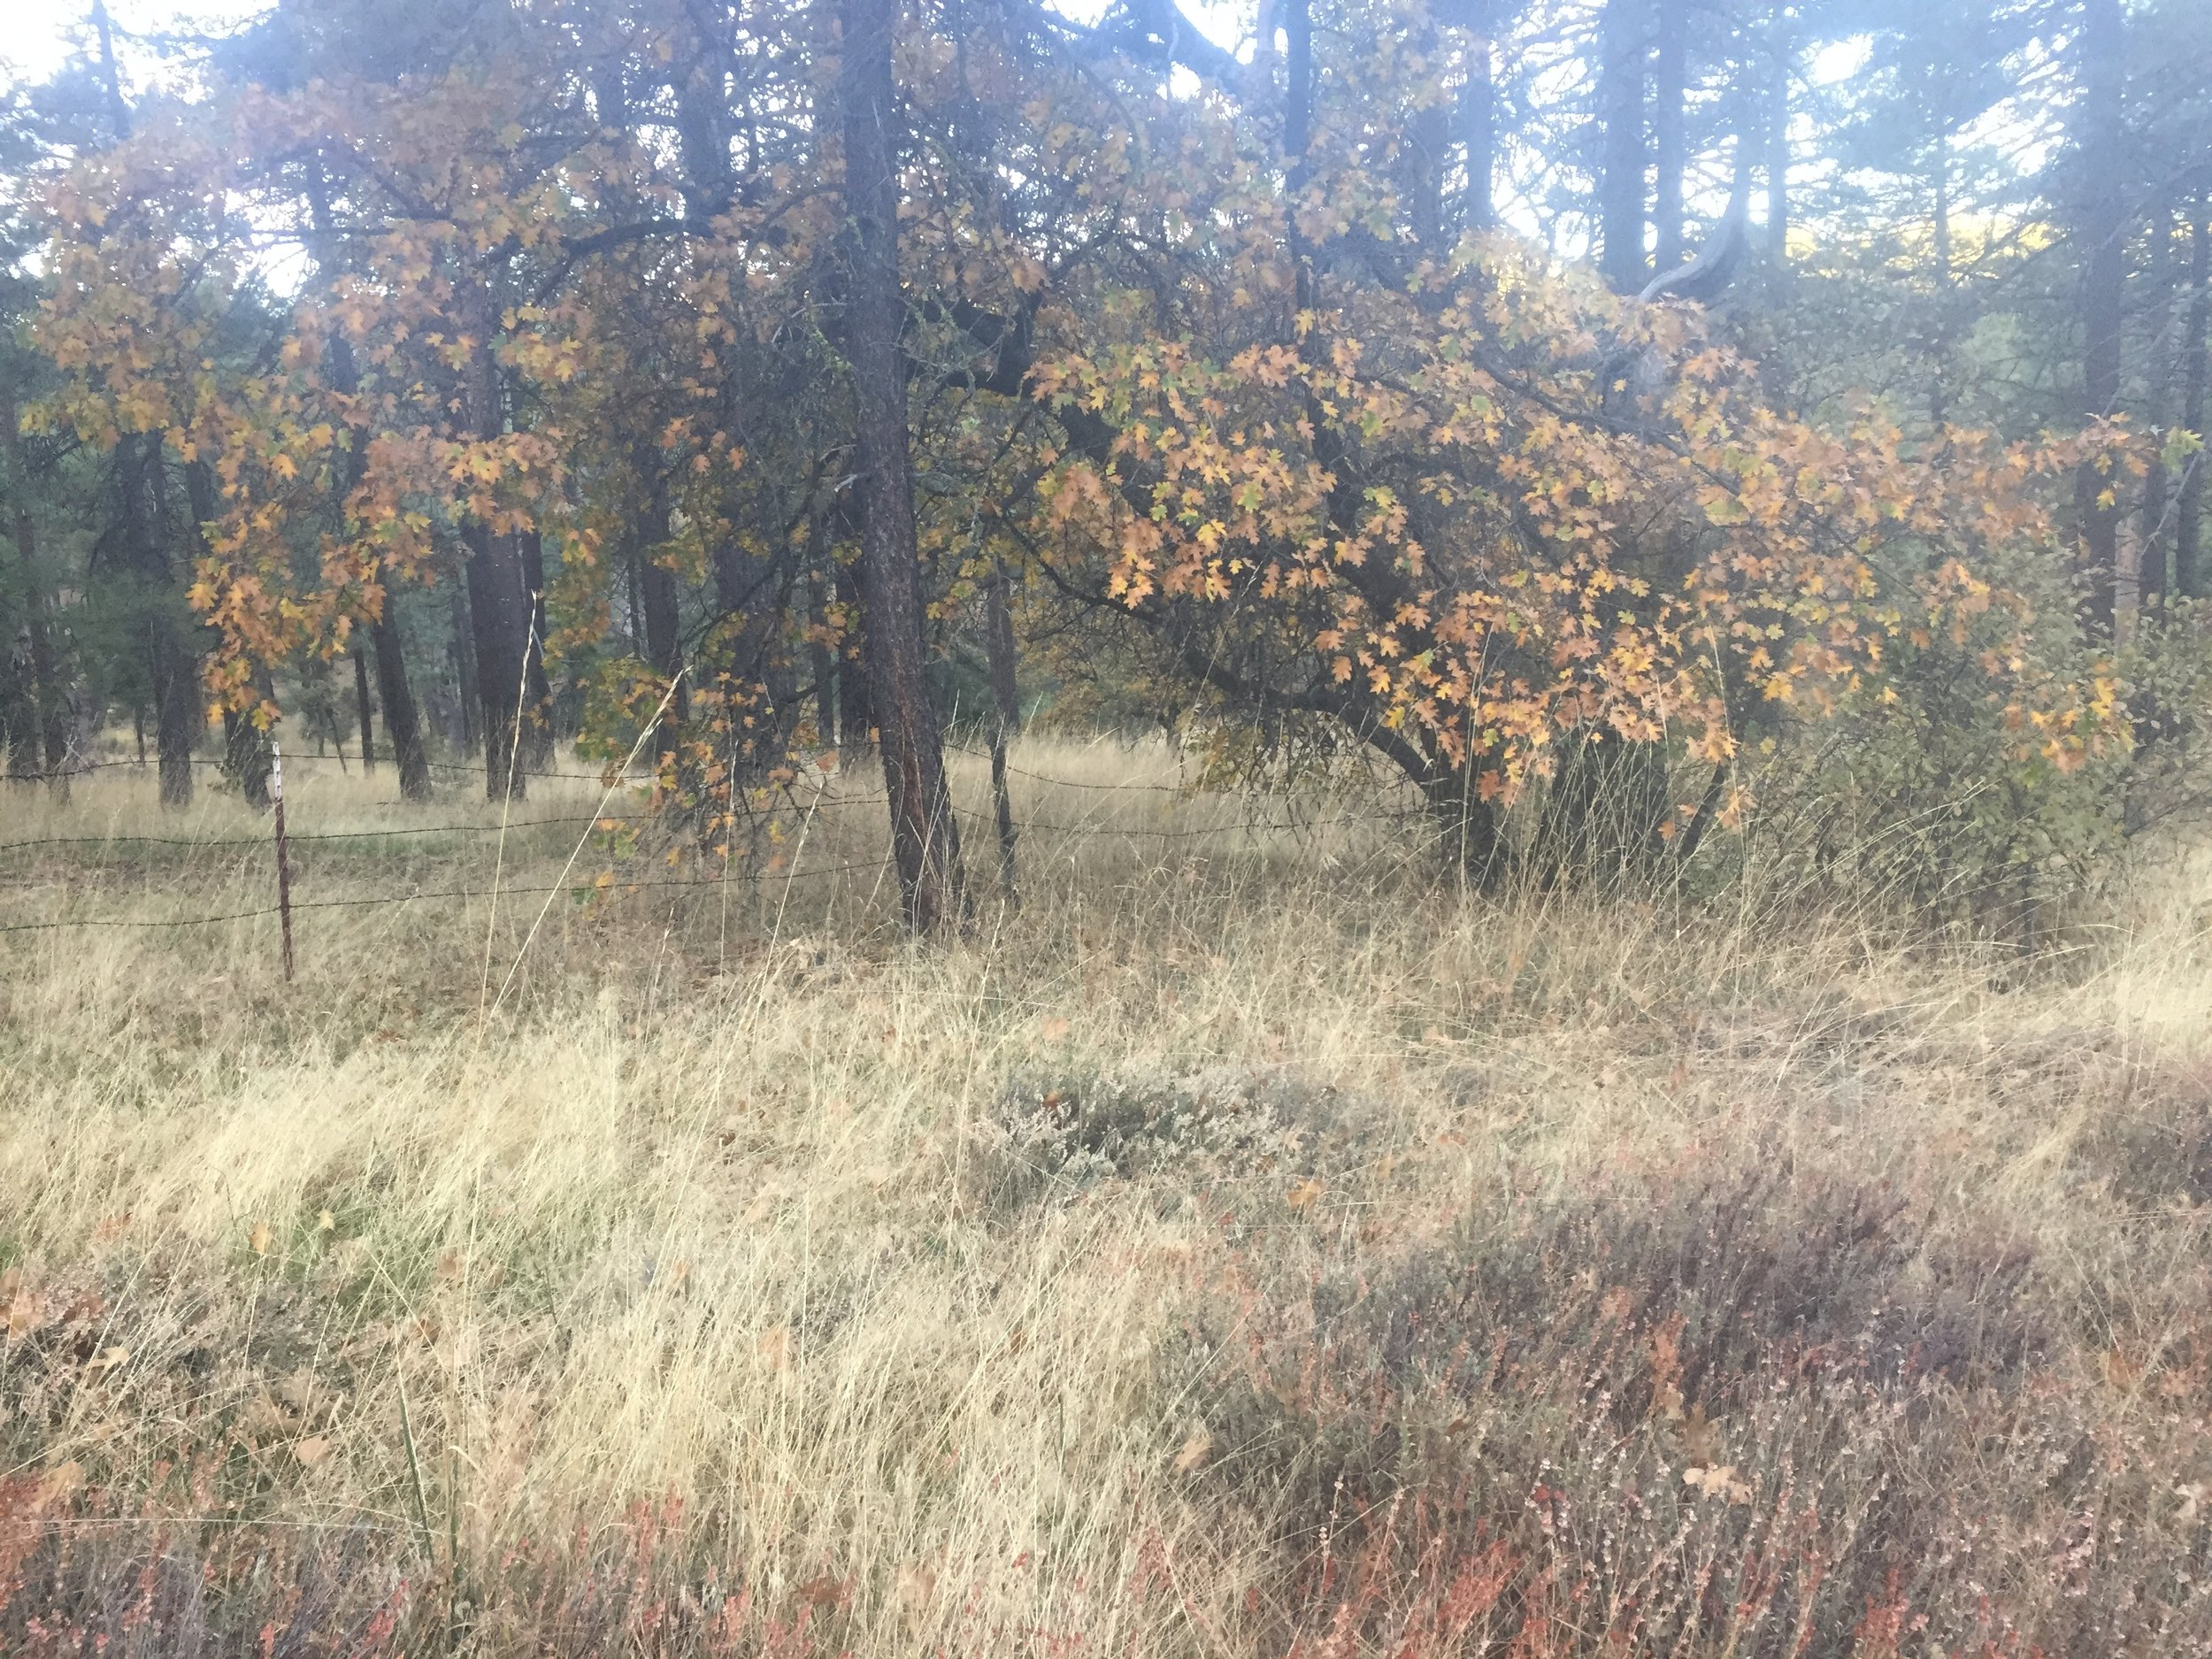 Golden fall colors in the oaks and dry grasses around Mt. Laguna in early November